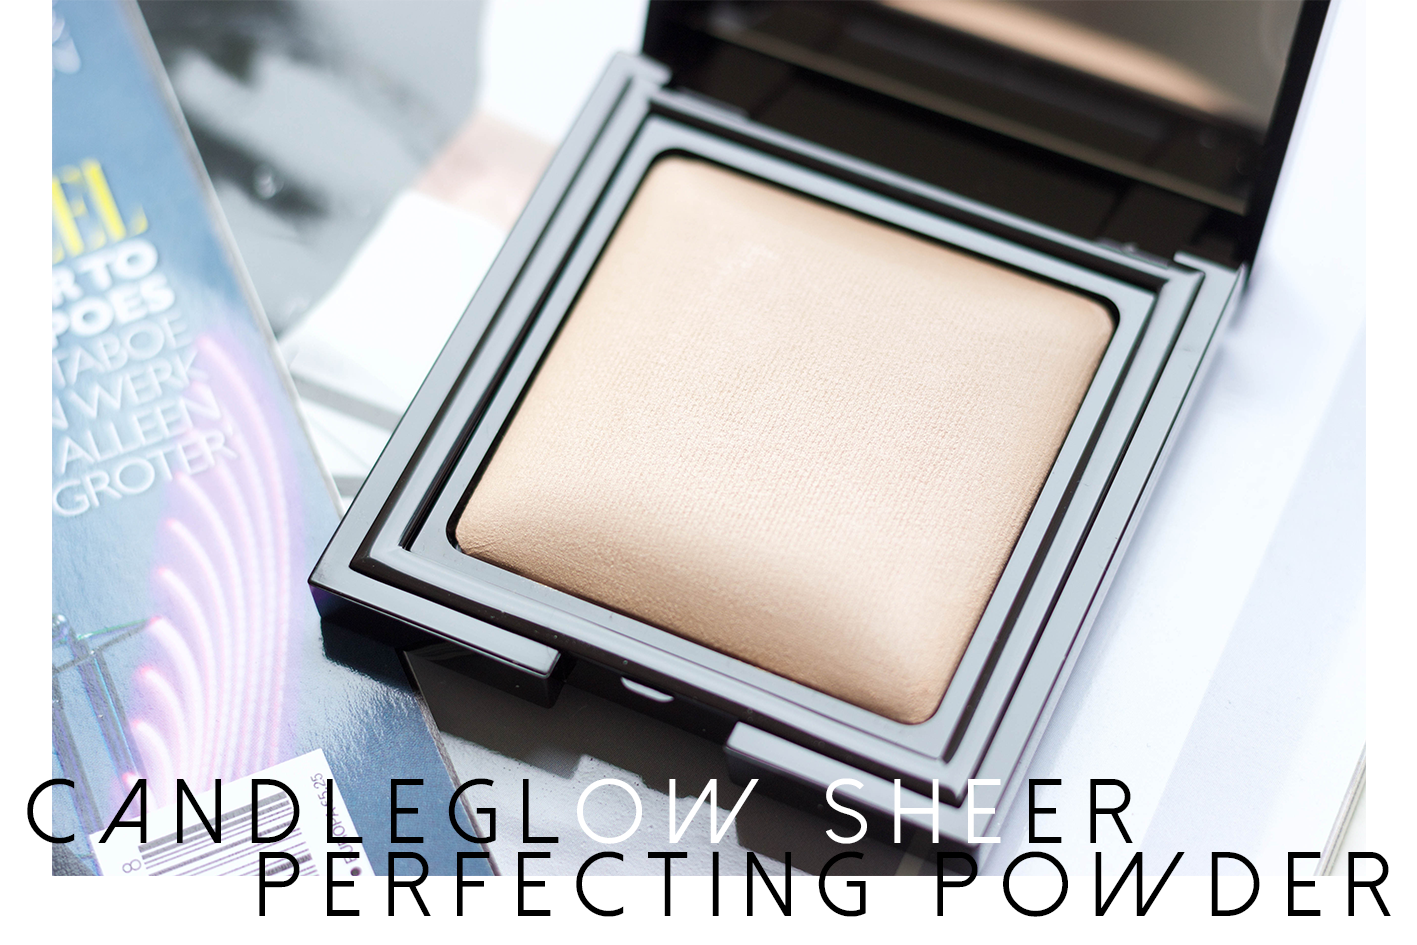 Laura Mercier Sheer candleglow sheer perfecting powder